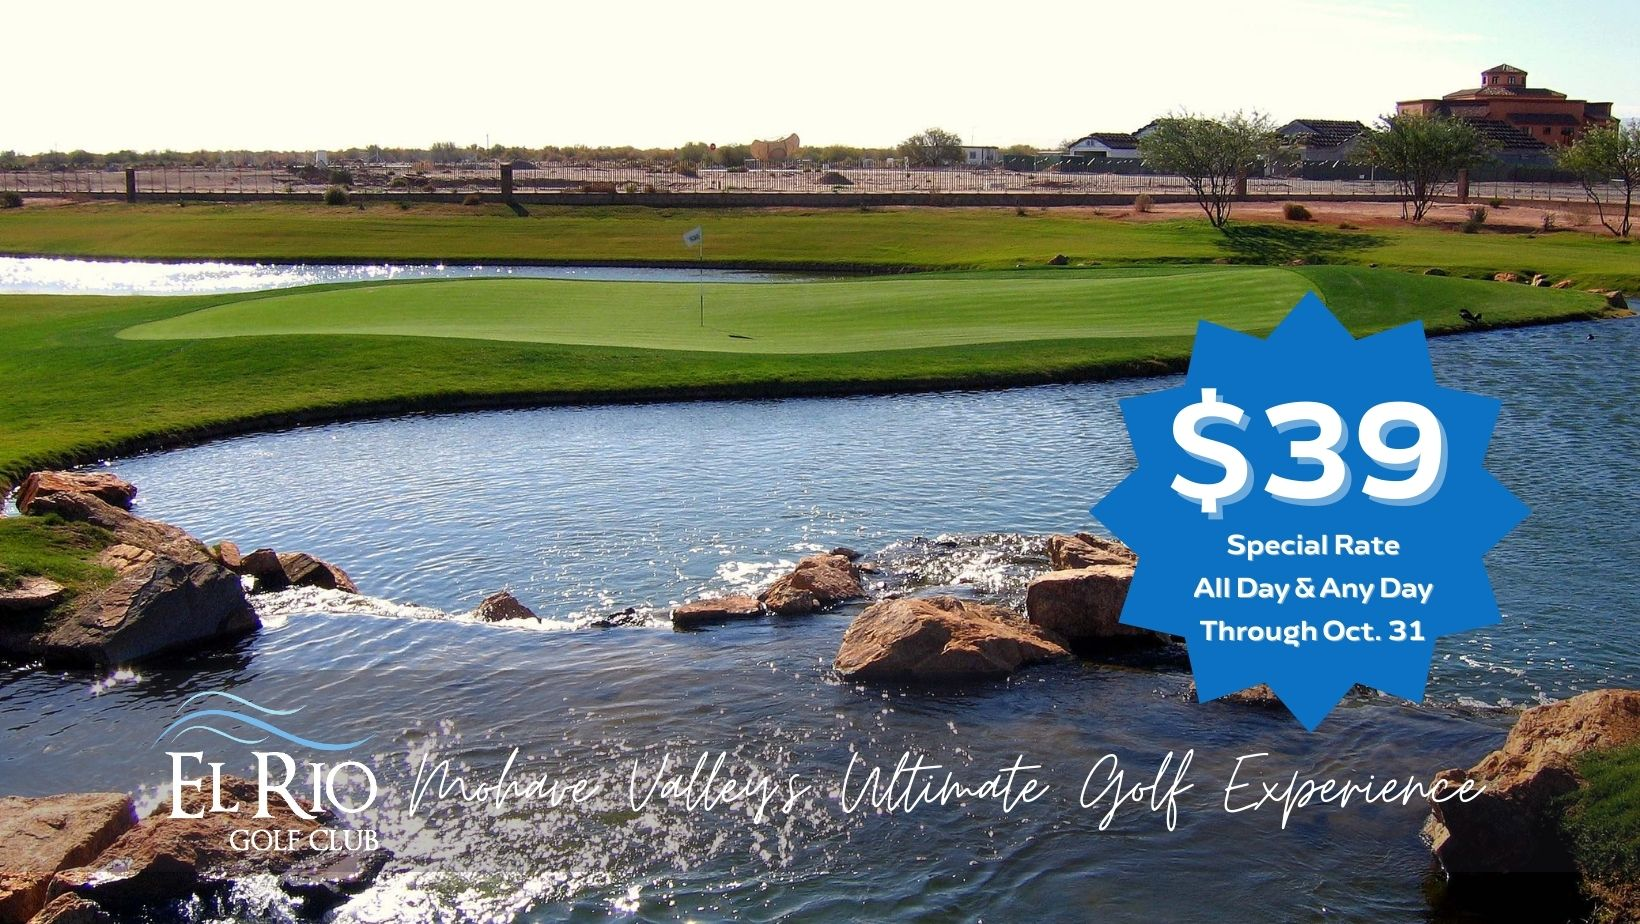 $39 Special Rate Through October 31